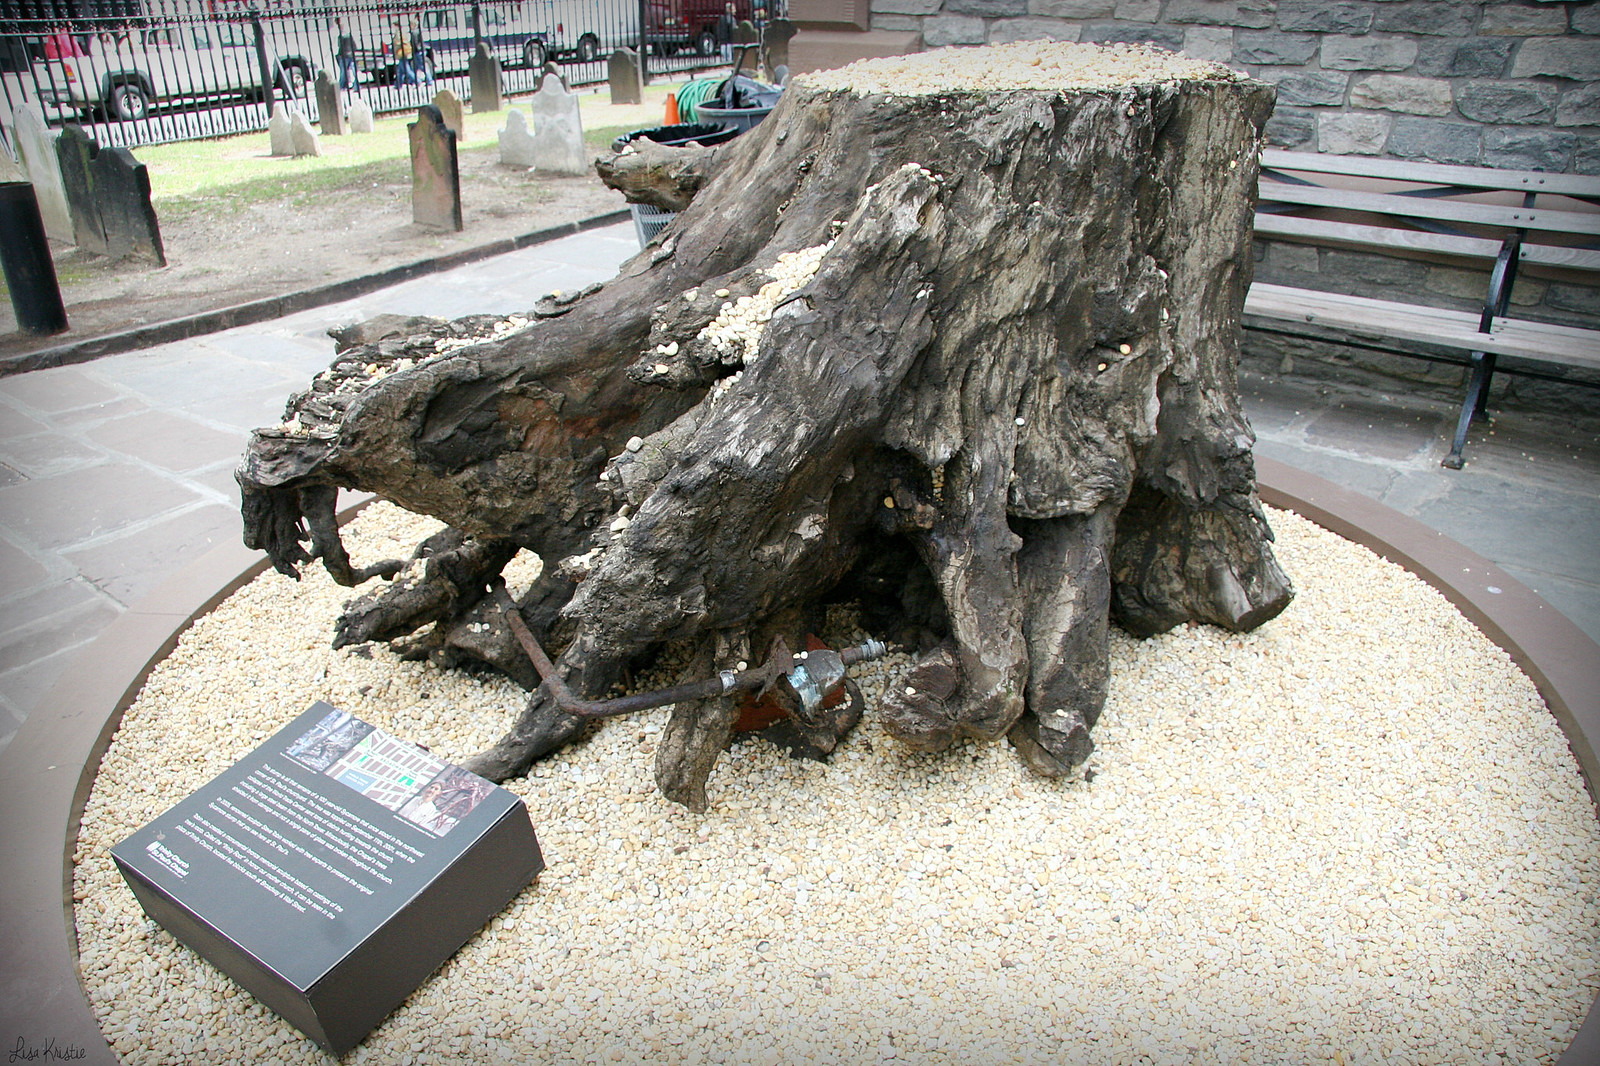 Saint Paul's Chapel sycamore tree stump roots 9/11 september 11th 2001 metal debris memorial church ground zero world trade center wtc towers